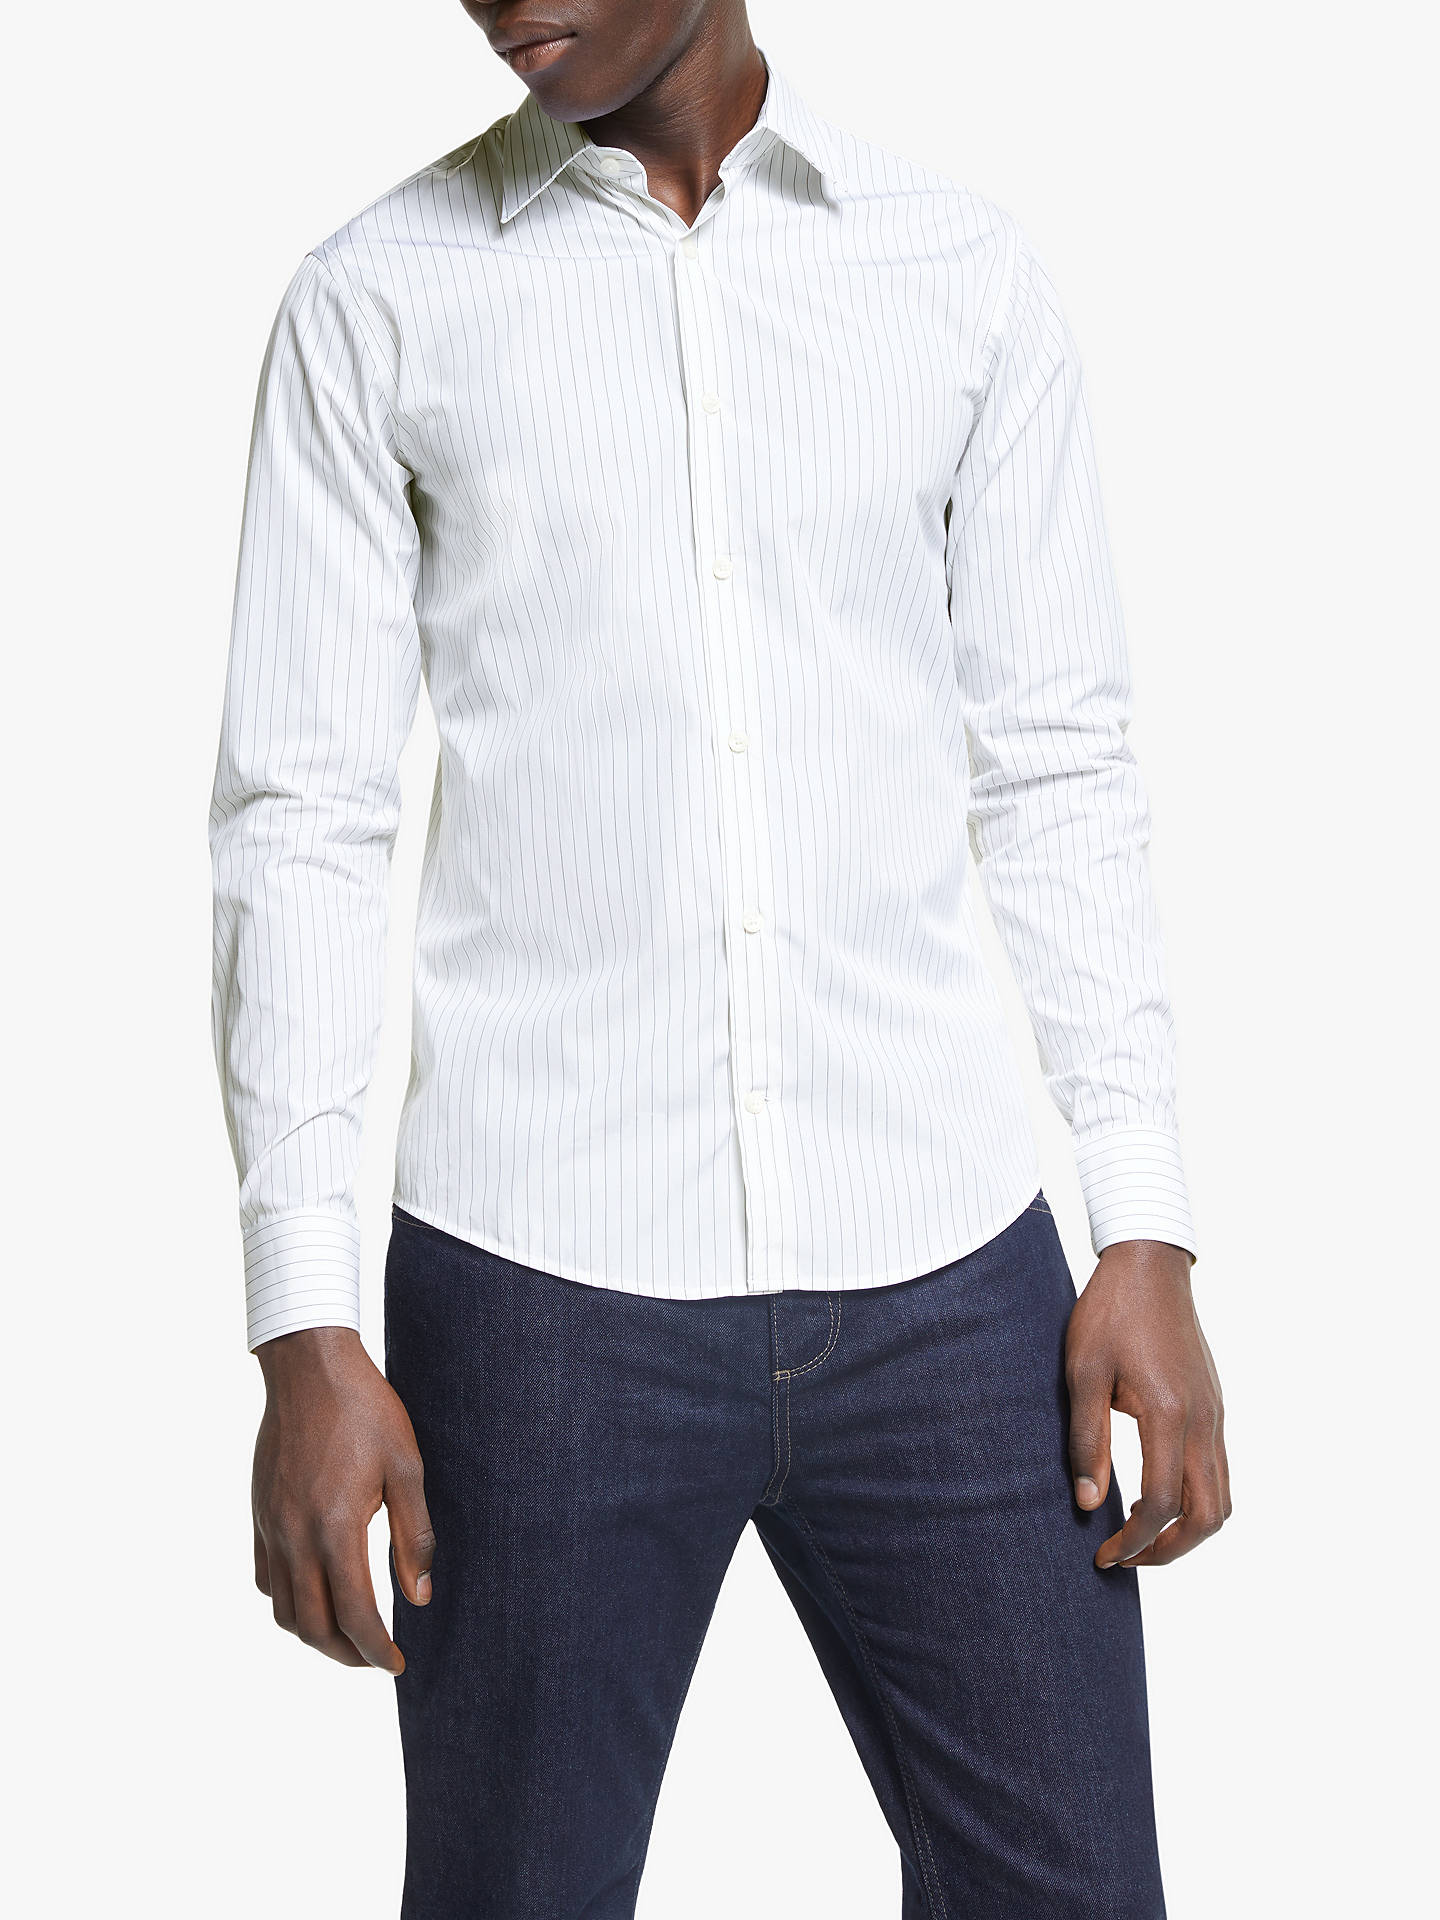 de4627dc493 Buy Tiger of Sweden Farrell Slim Fit Shirt, White/Black, 15 Online at ...